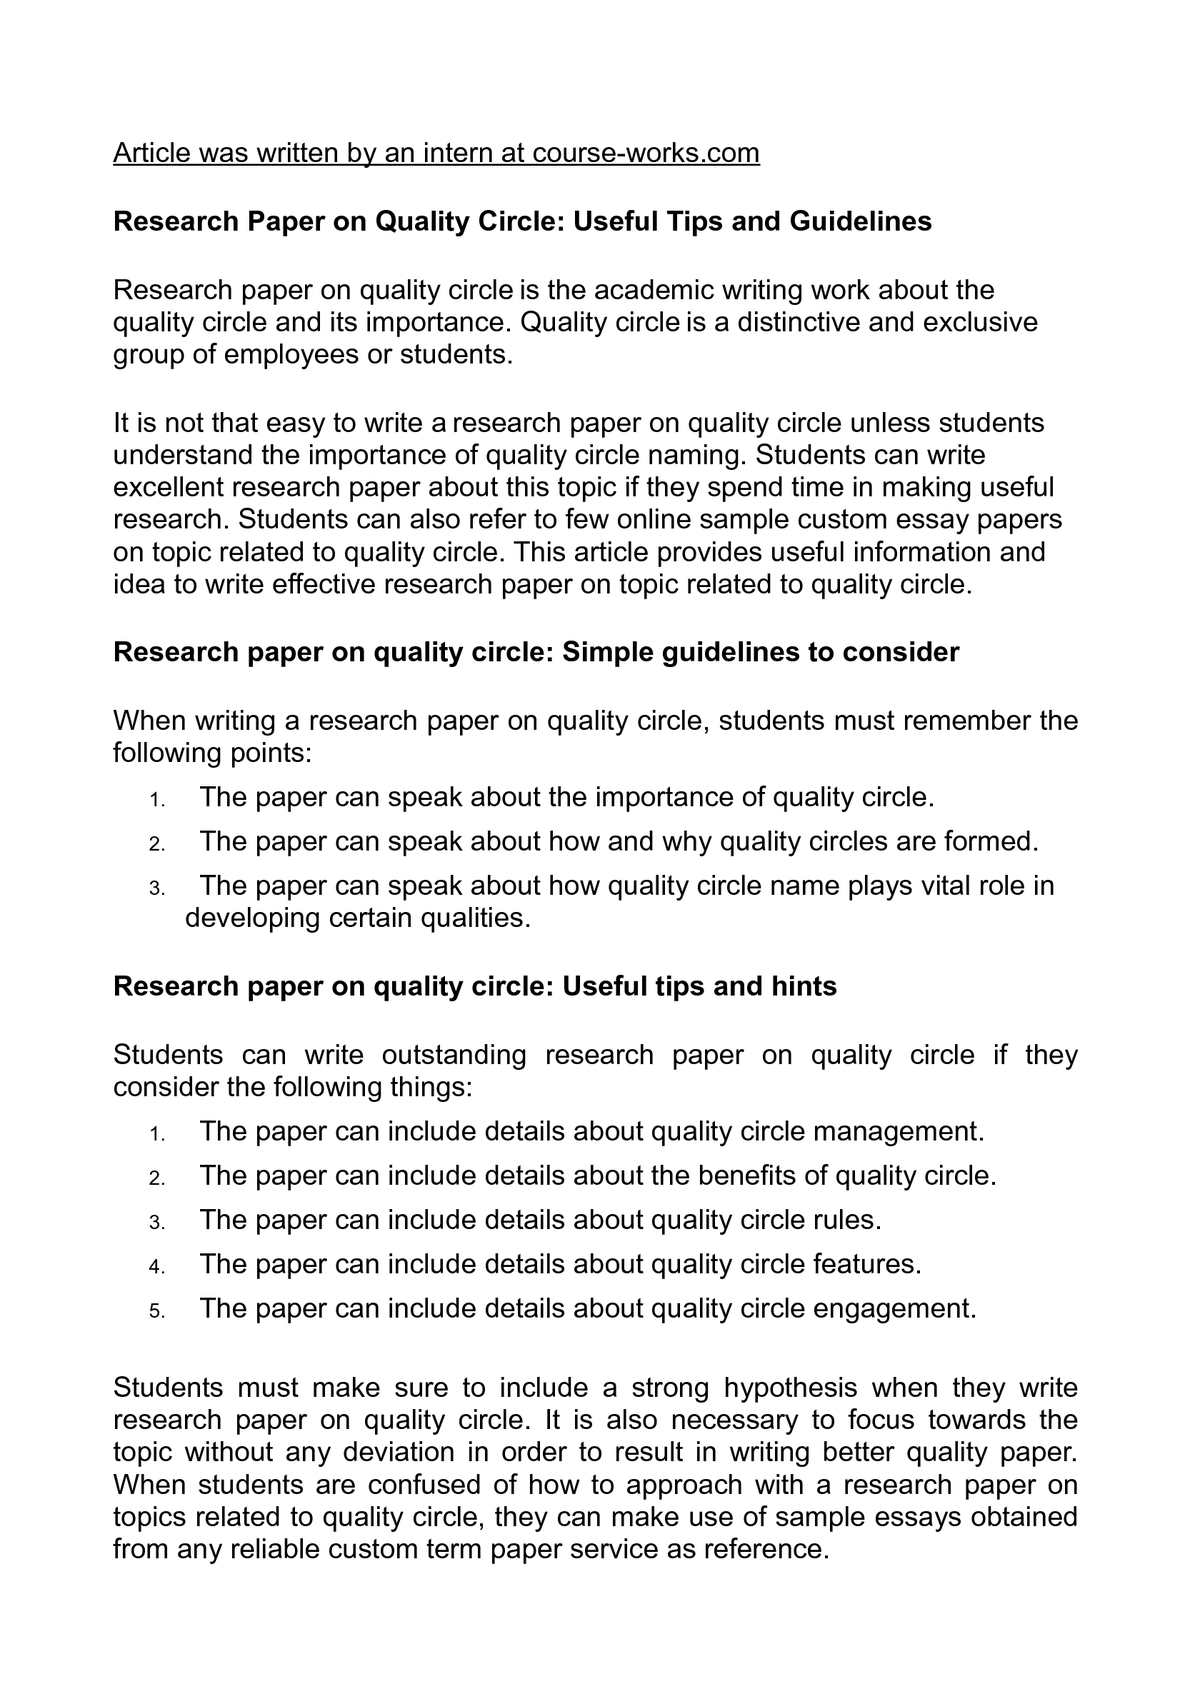 007 Research Paper Easy Topics Beautiful For College Students English 101 Psychology Full